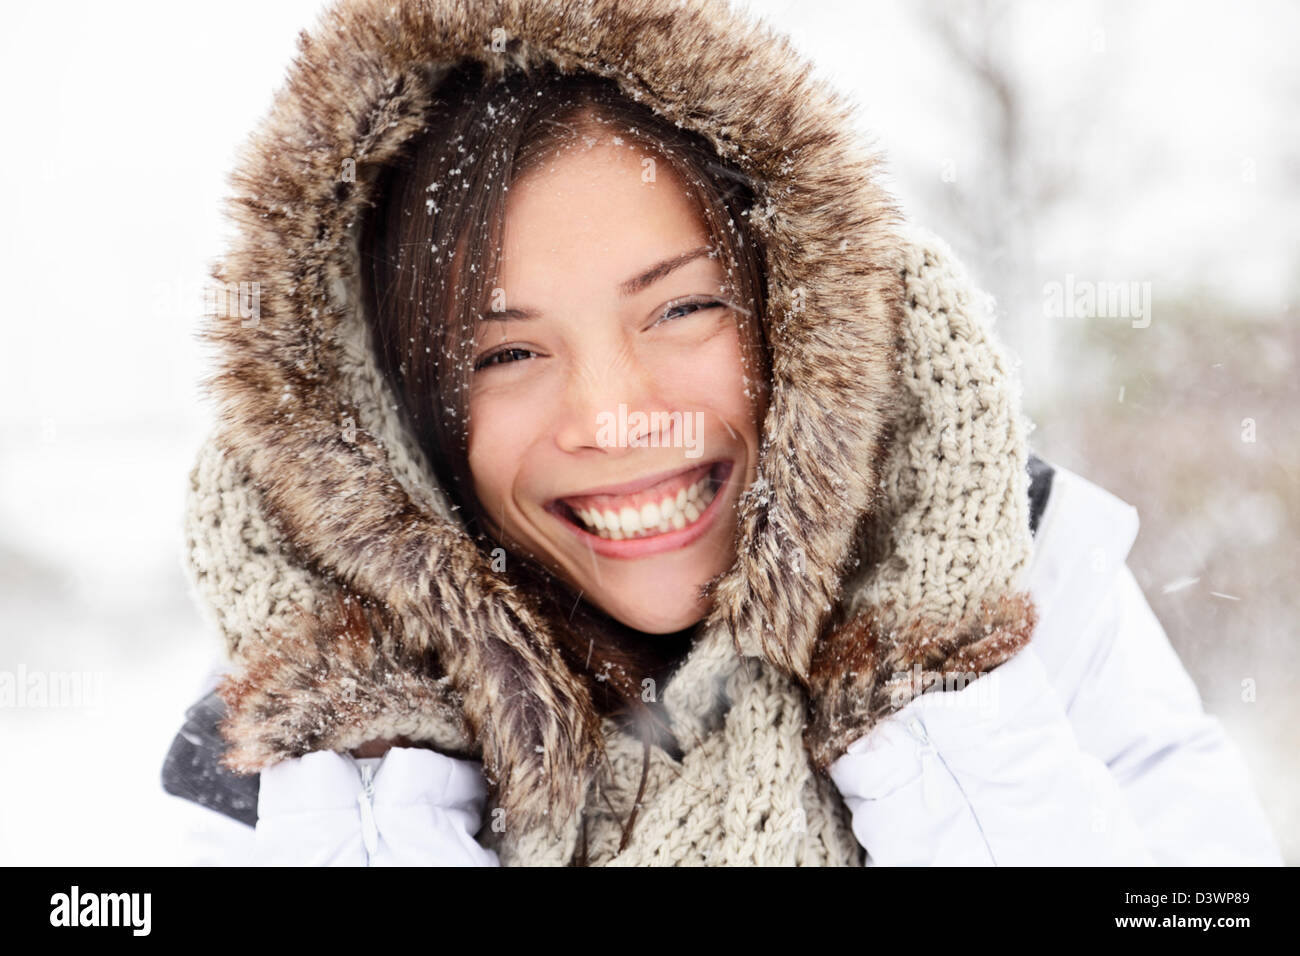 Closeup portrait of happy cheerful beautiful mixed race Caucasian Asian woman on snowing winter day - Stock Image